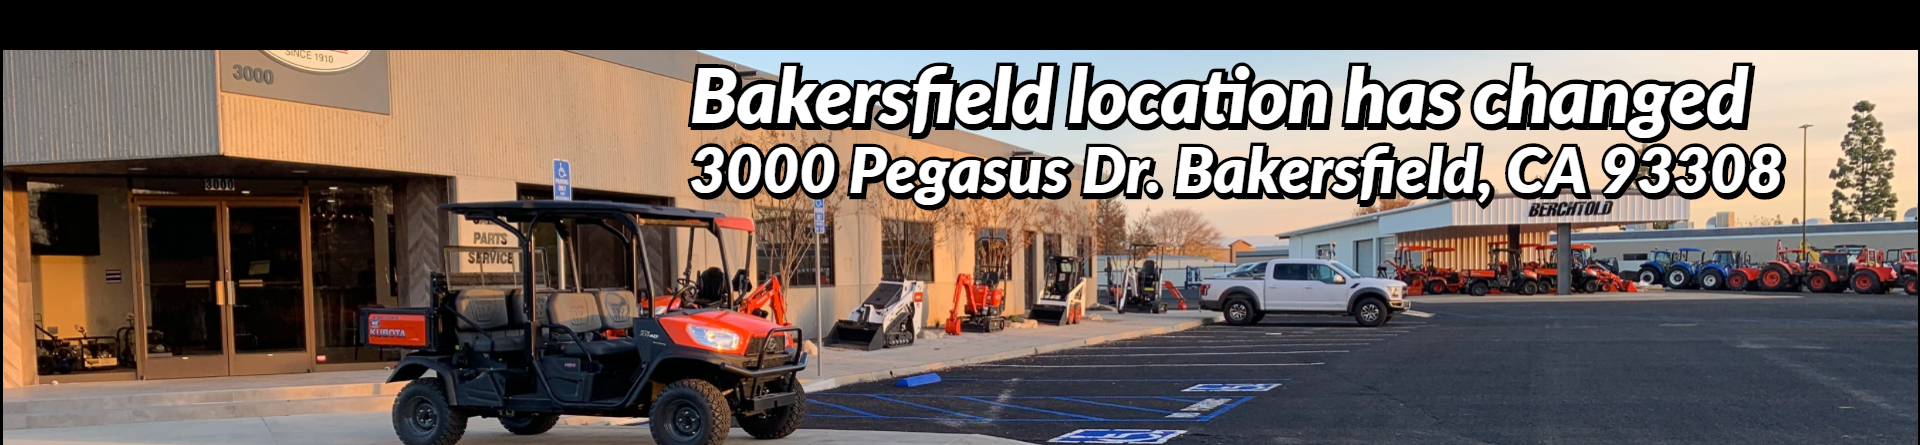 New Bakersfield Address.